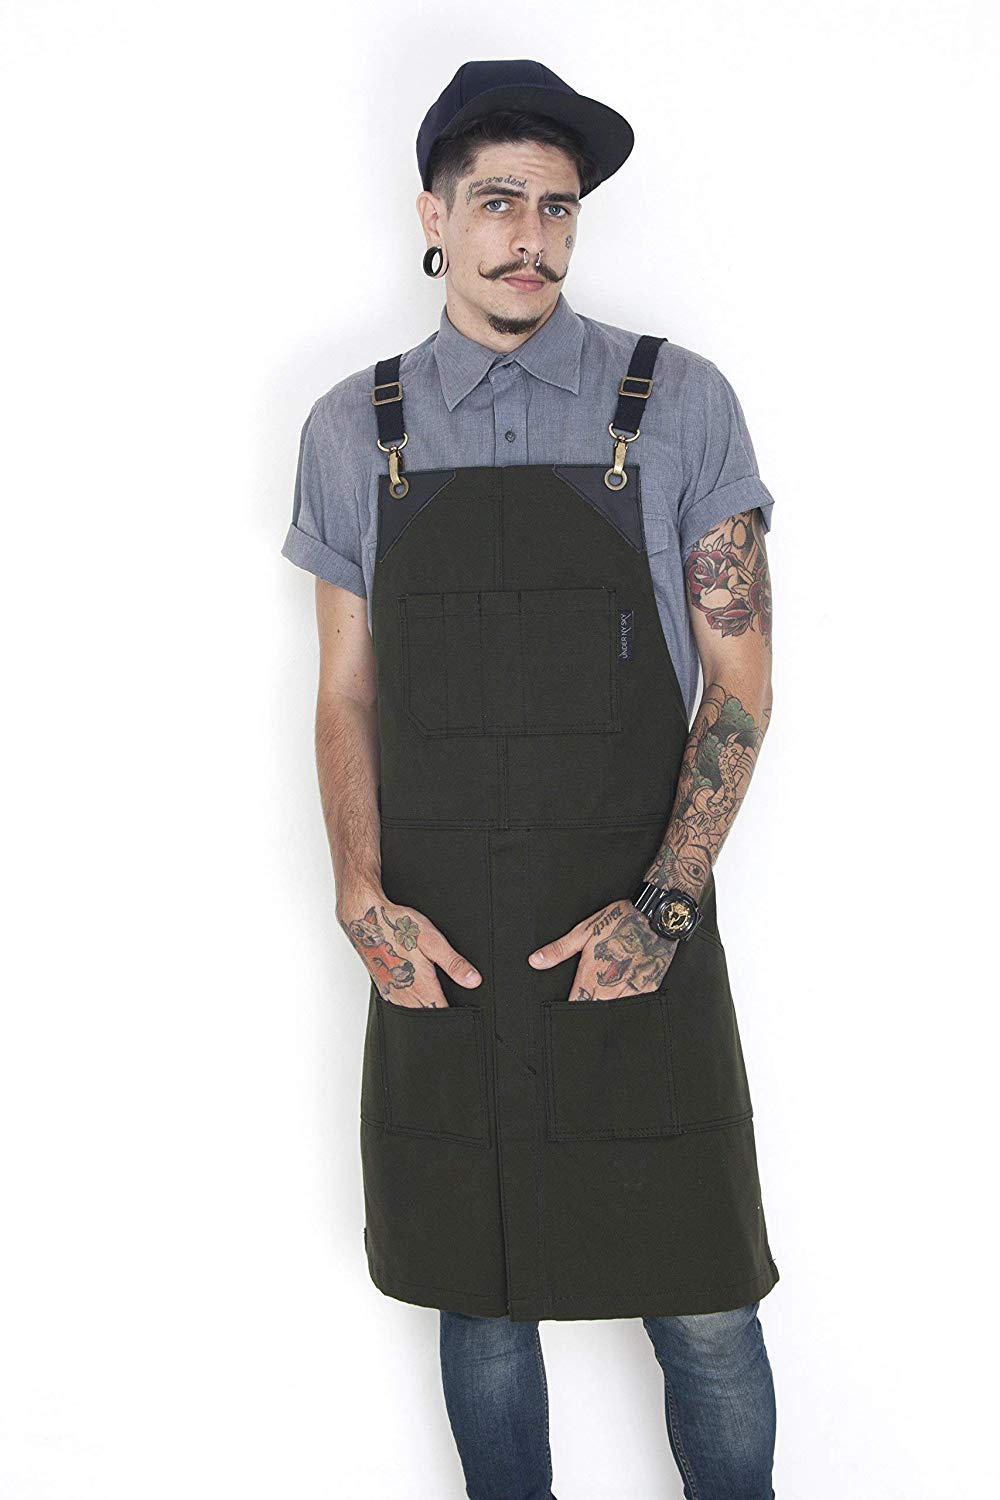 Cargo Dark Forest Apron – Cross-Back with Heavy-Duty Waxed Canvas, Leather Reinforcement and Split-Leg – Adjustable for Men and Women – Pro Woodworker, Mechanic, Welder, Artist Aprons